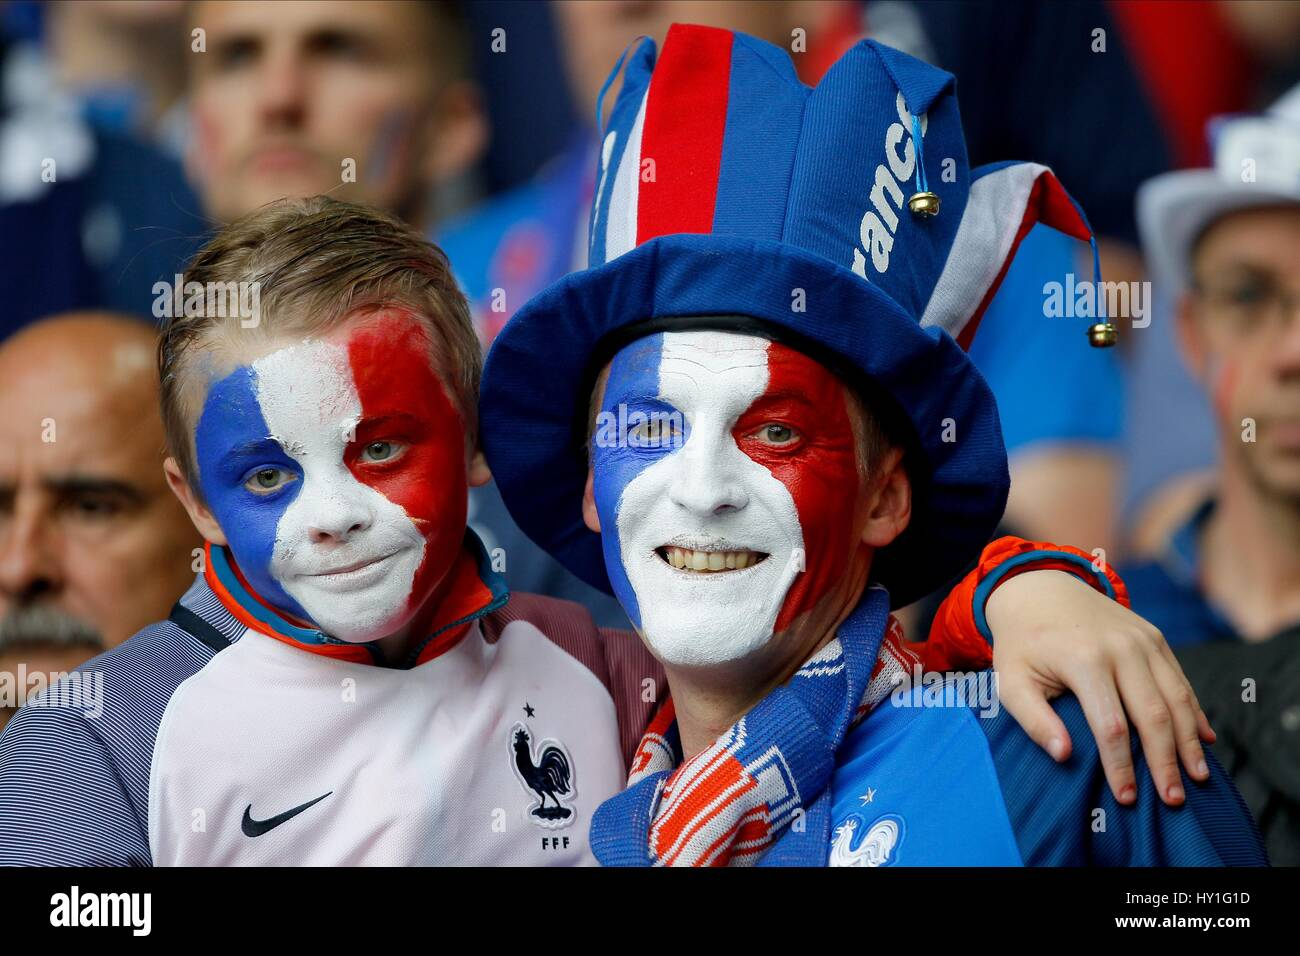 FRENCH FANS WITH PAINTED FACES SWITZERLAND V FRANCE STADE PIERRE-MAUROY LILLE FRANCE 19 June 2016 - Stock Image